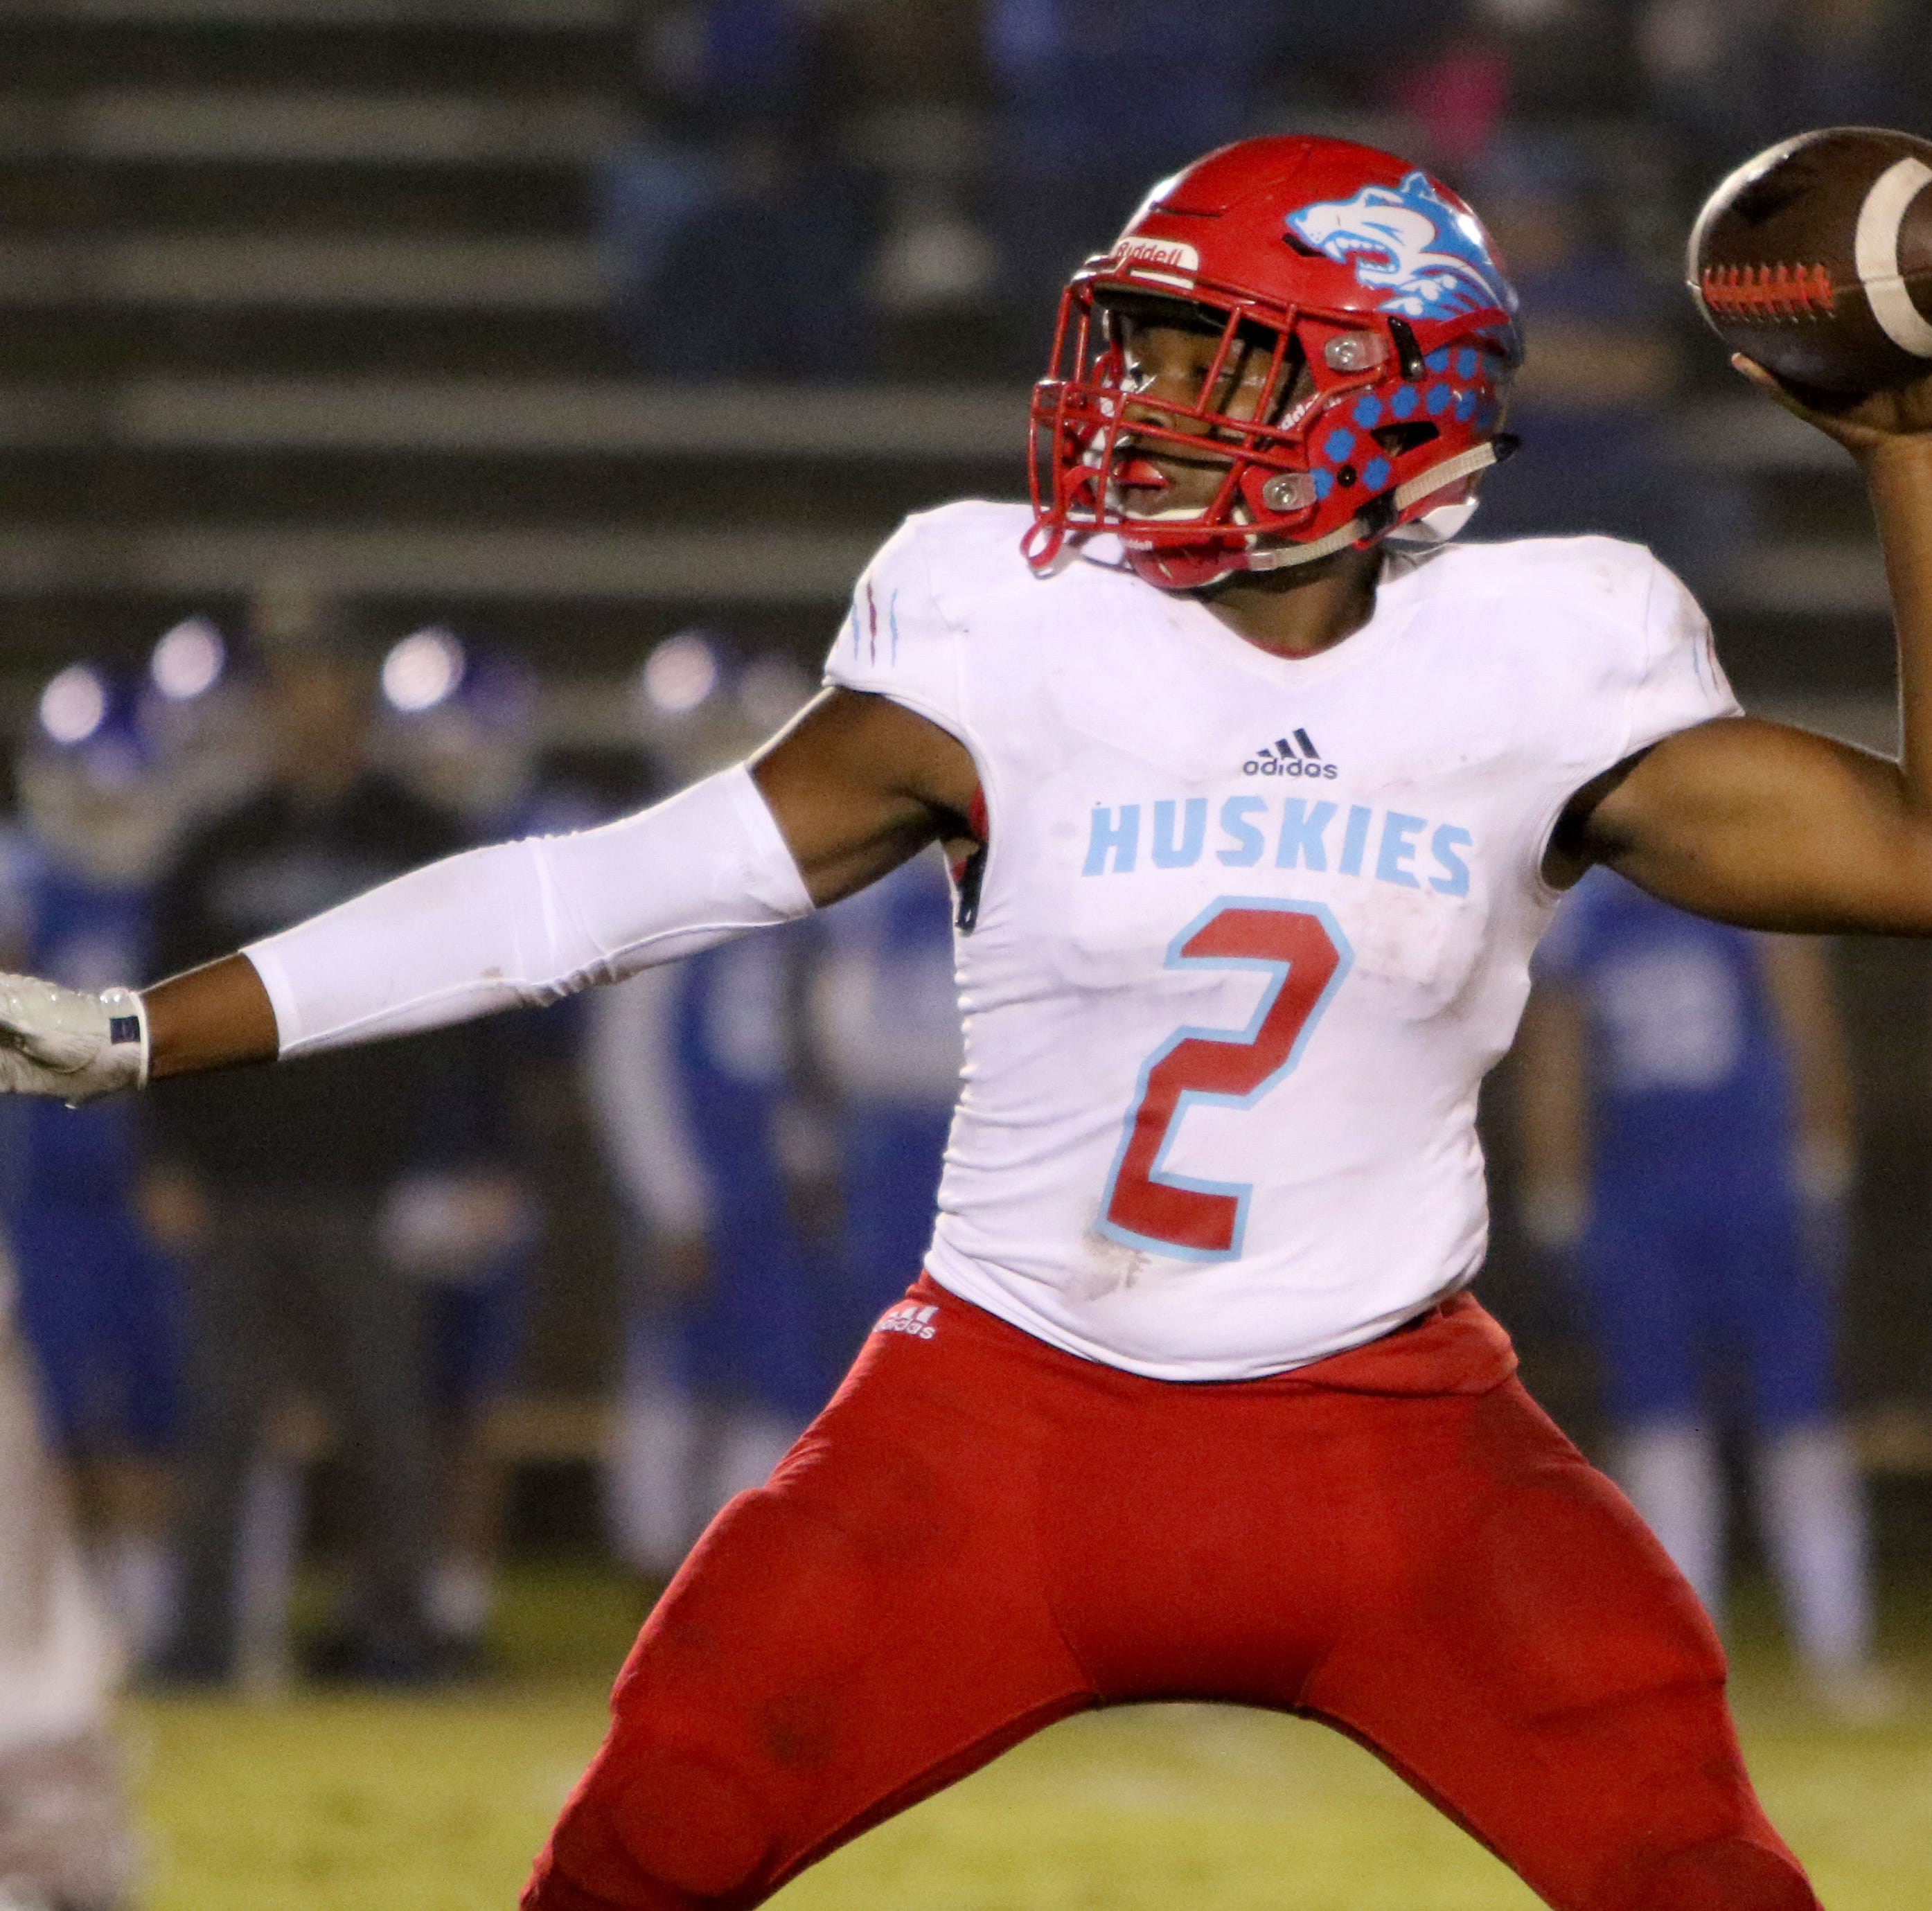 Hull column: Decatur changes everything early and changes the outcome late with 22-21 upset over Hirschi